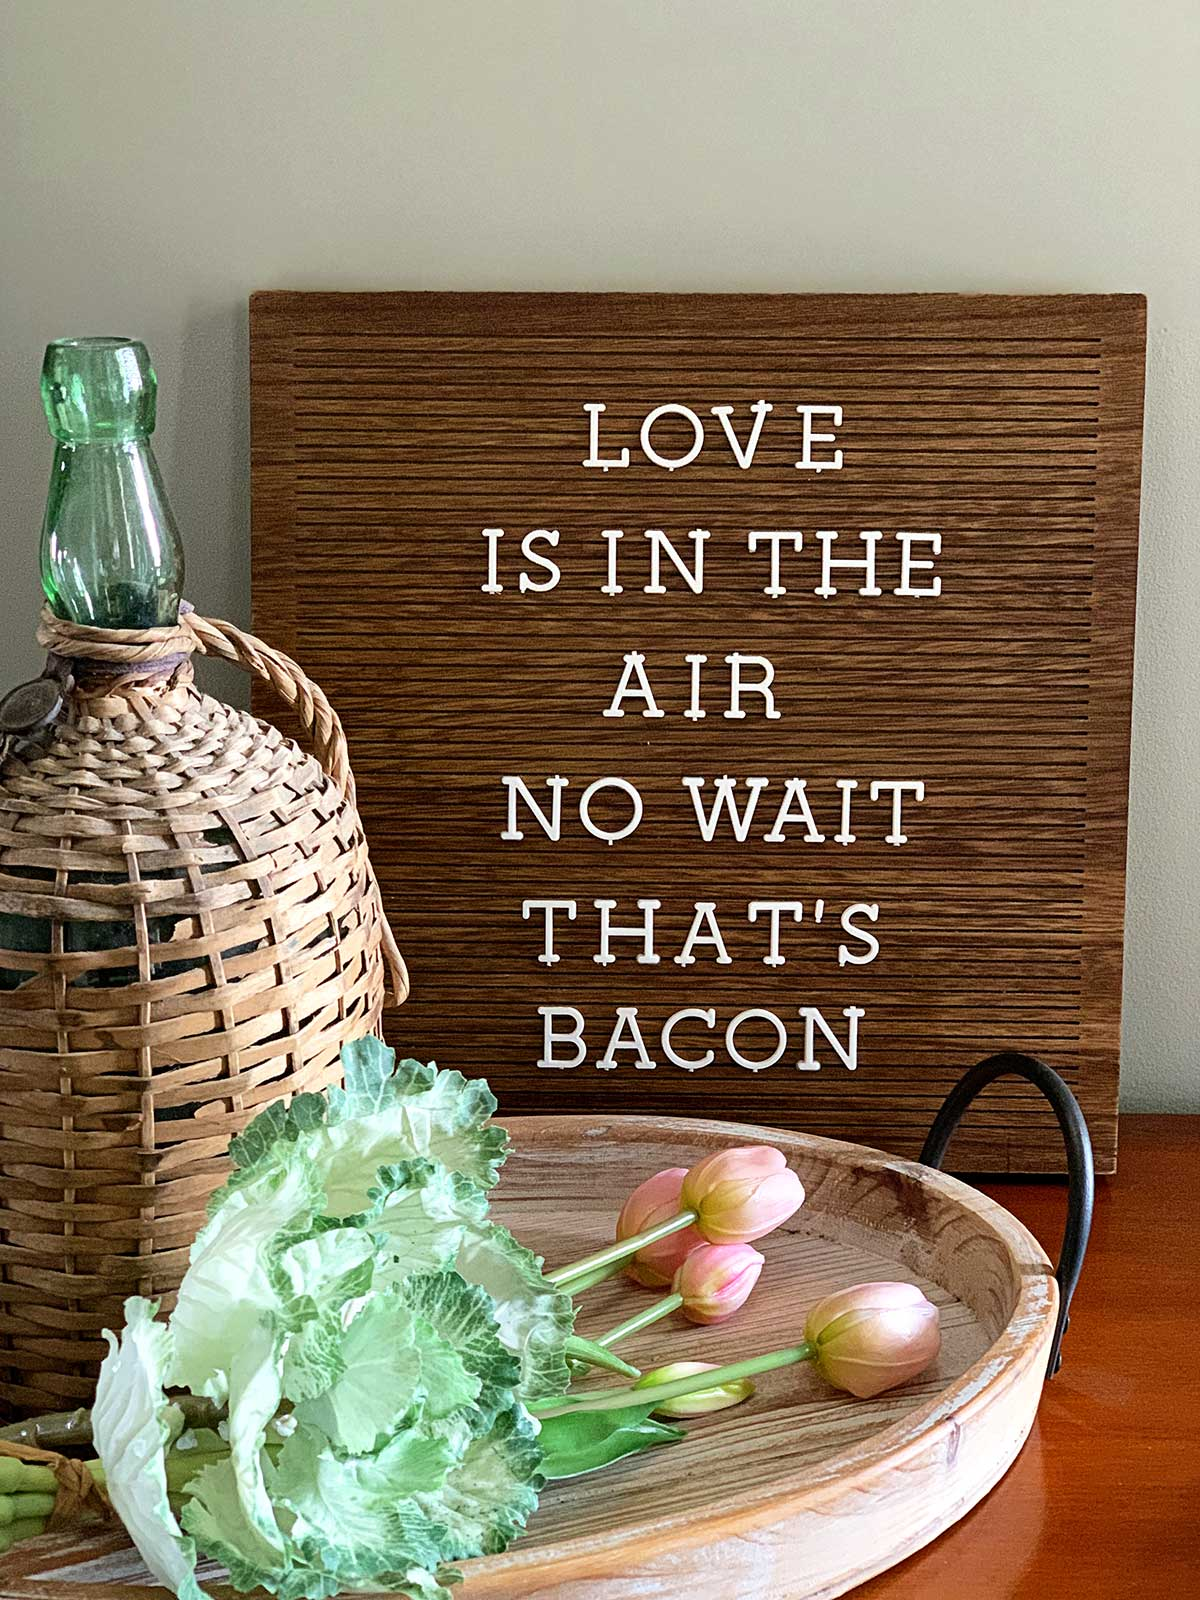 Letter board with the saying - Love is in the air, no wait that's bacon.